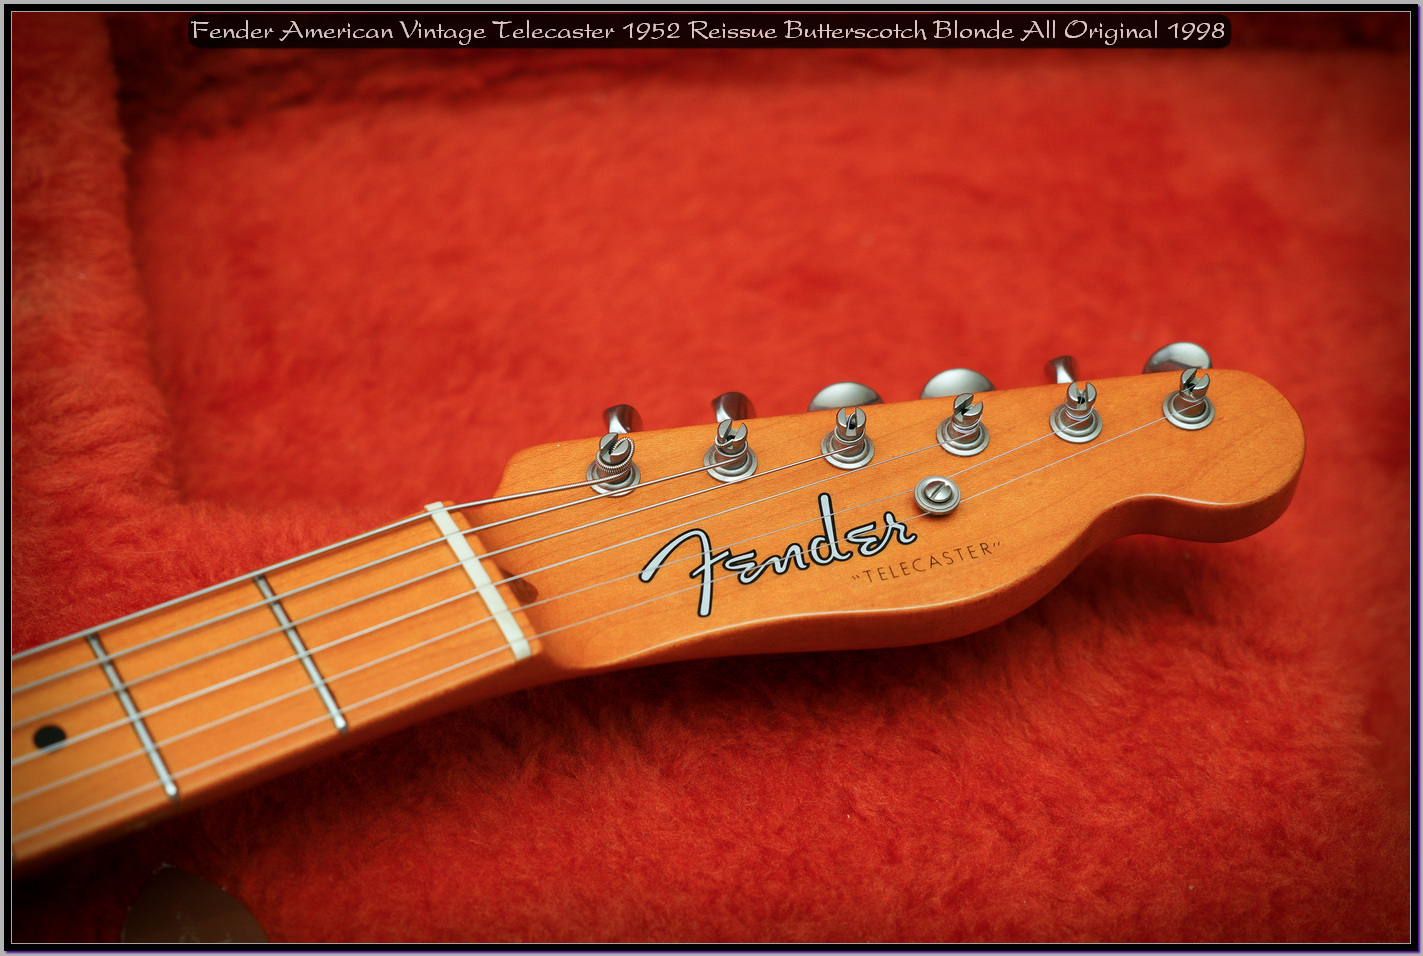 Fender American Vintage Telecaster 1952 Reissue Butterscotch Blonde All Original 1998 19_x1440.jpg